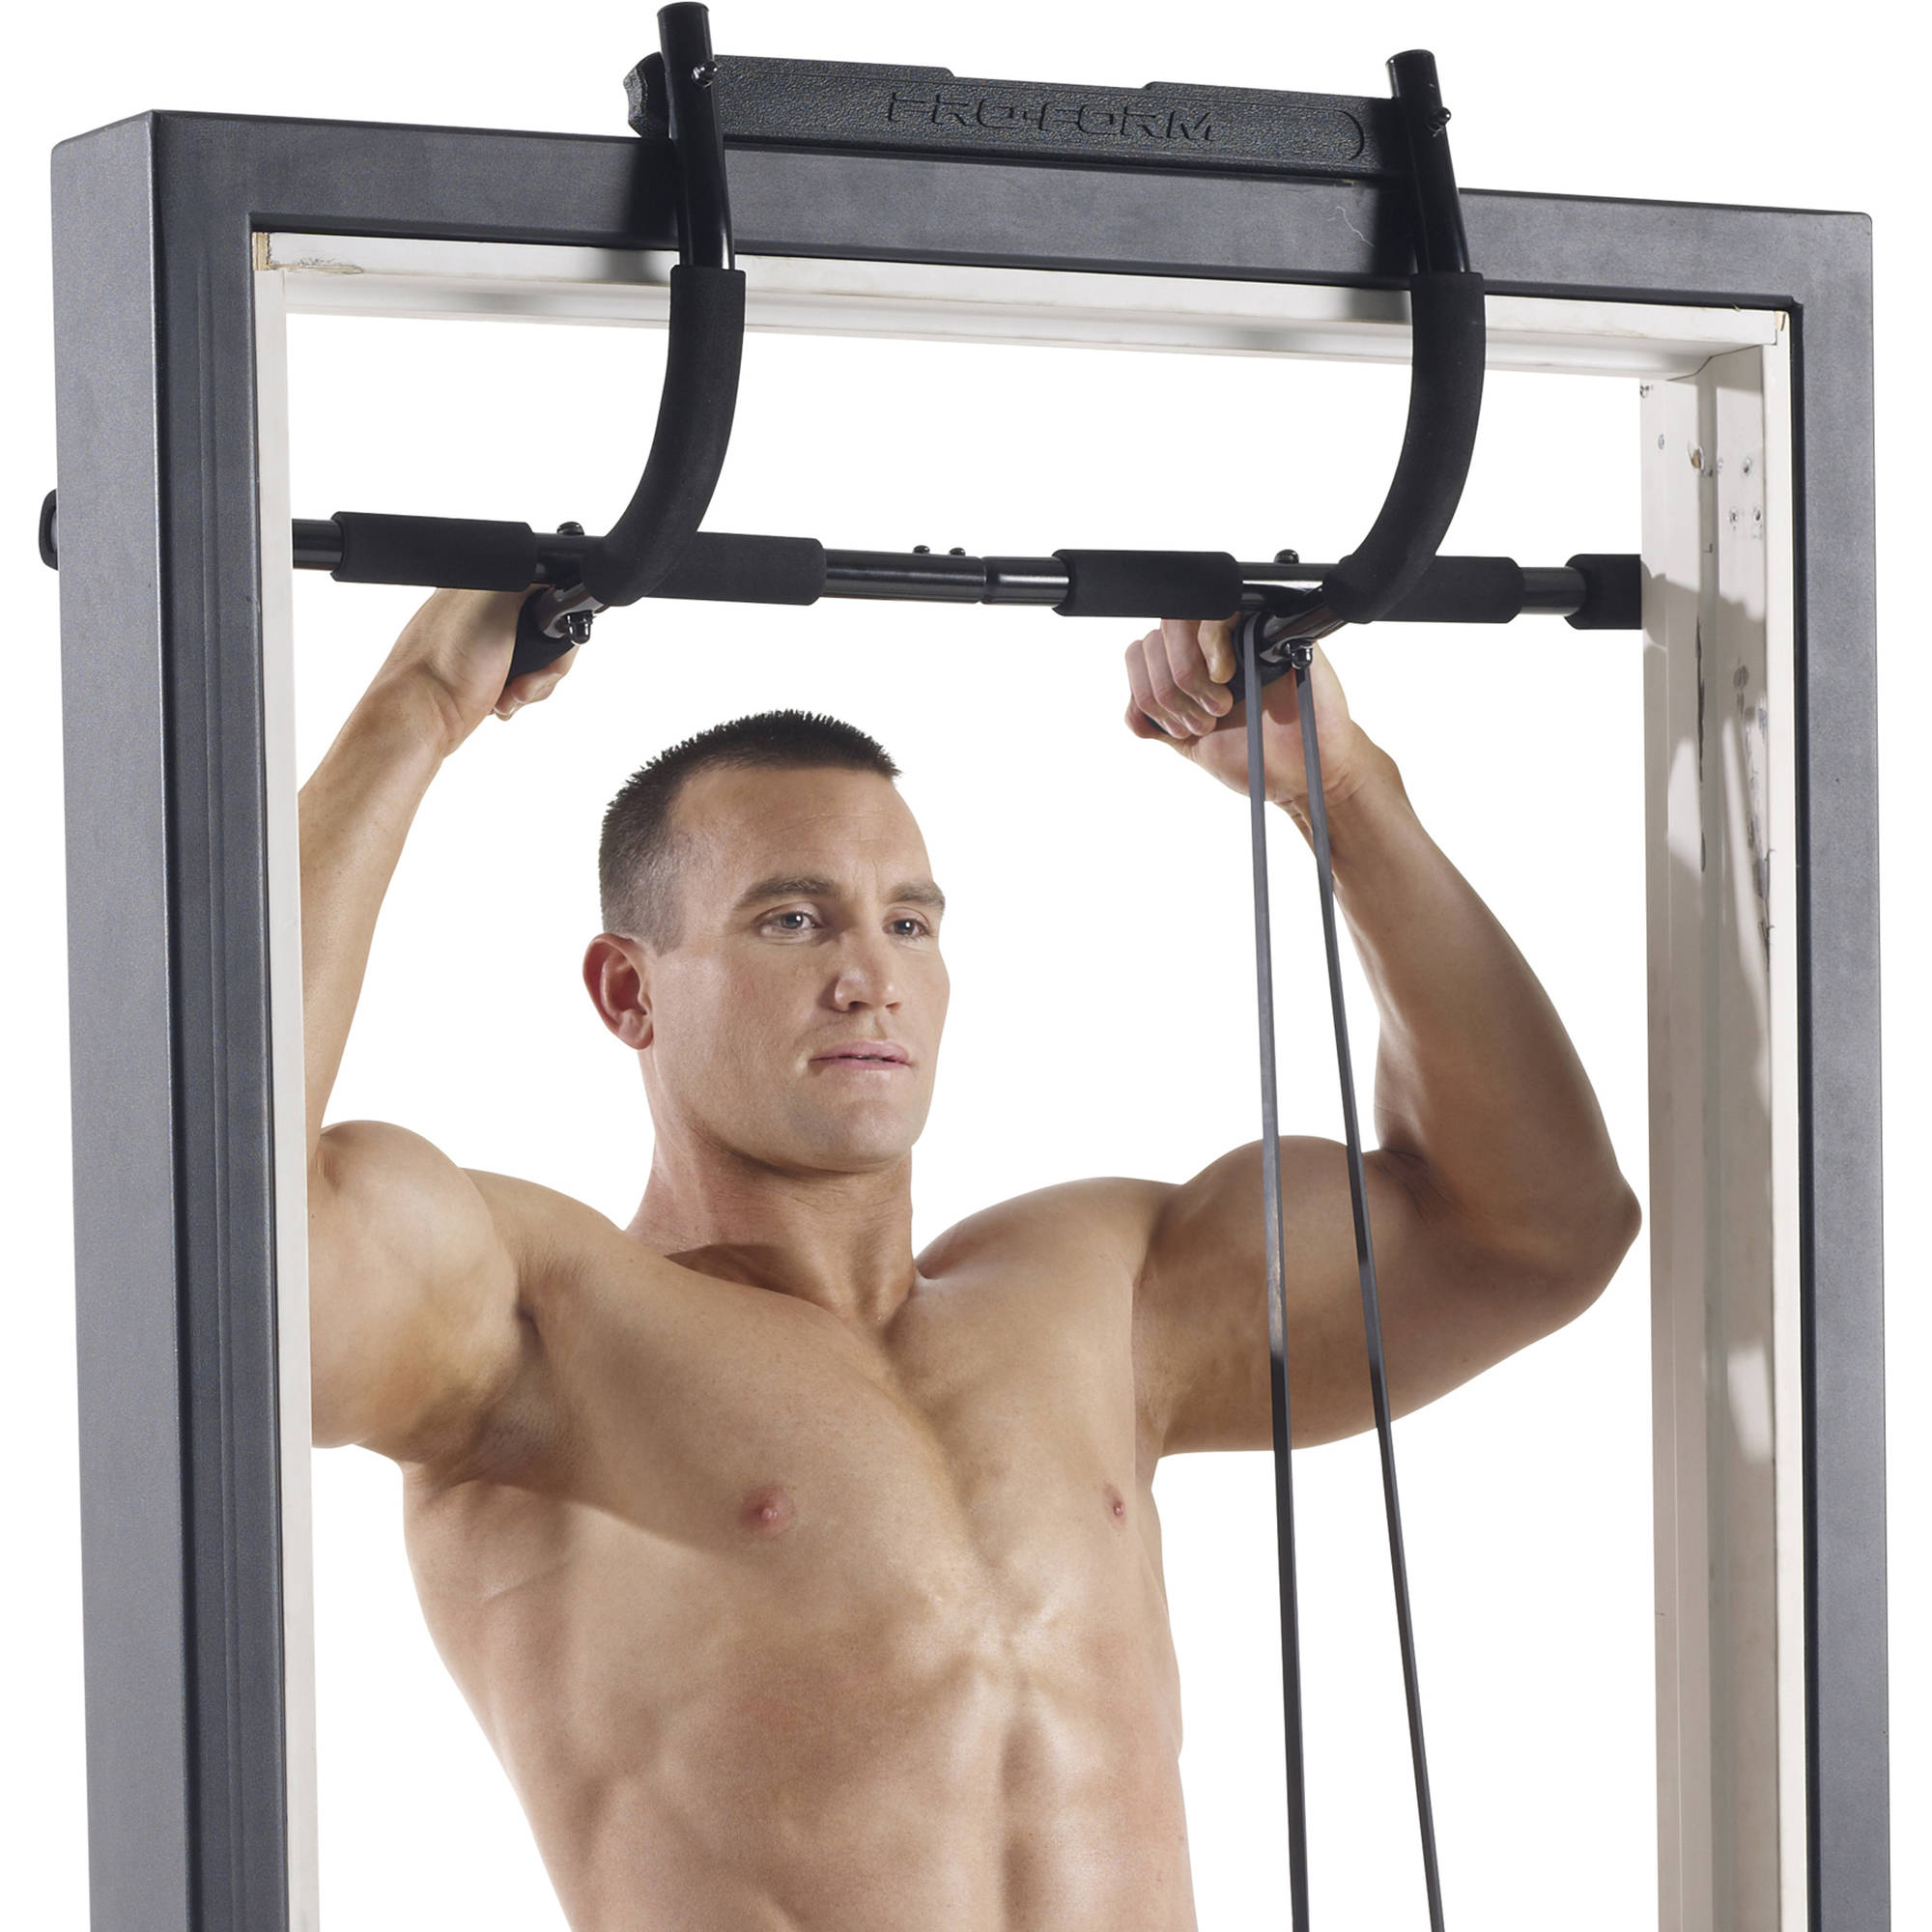 door fix quick for watch up frames bar damaged frame gym preventing pull iron